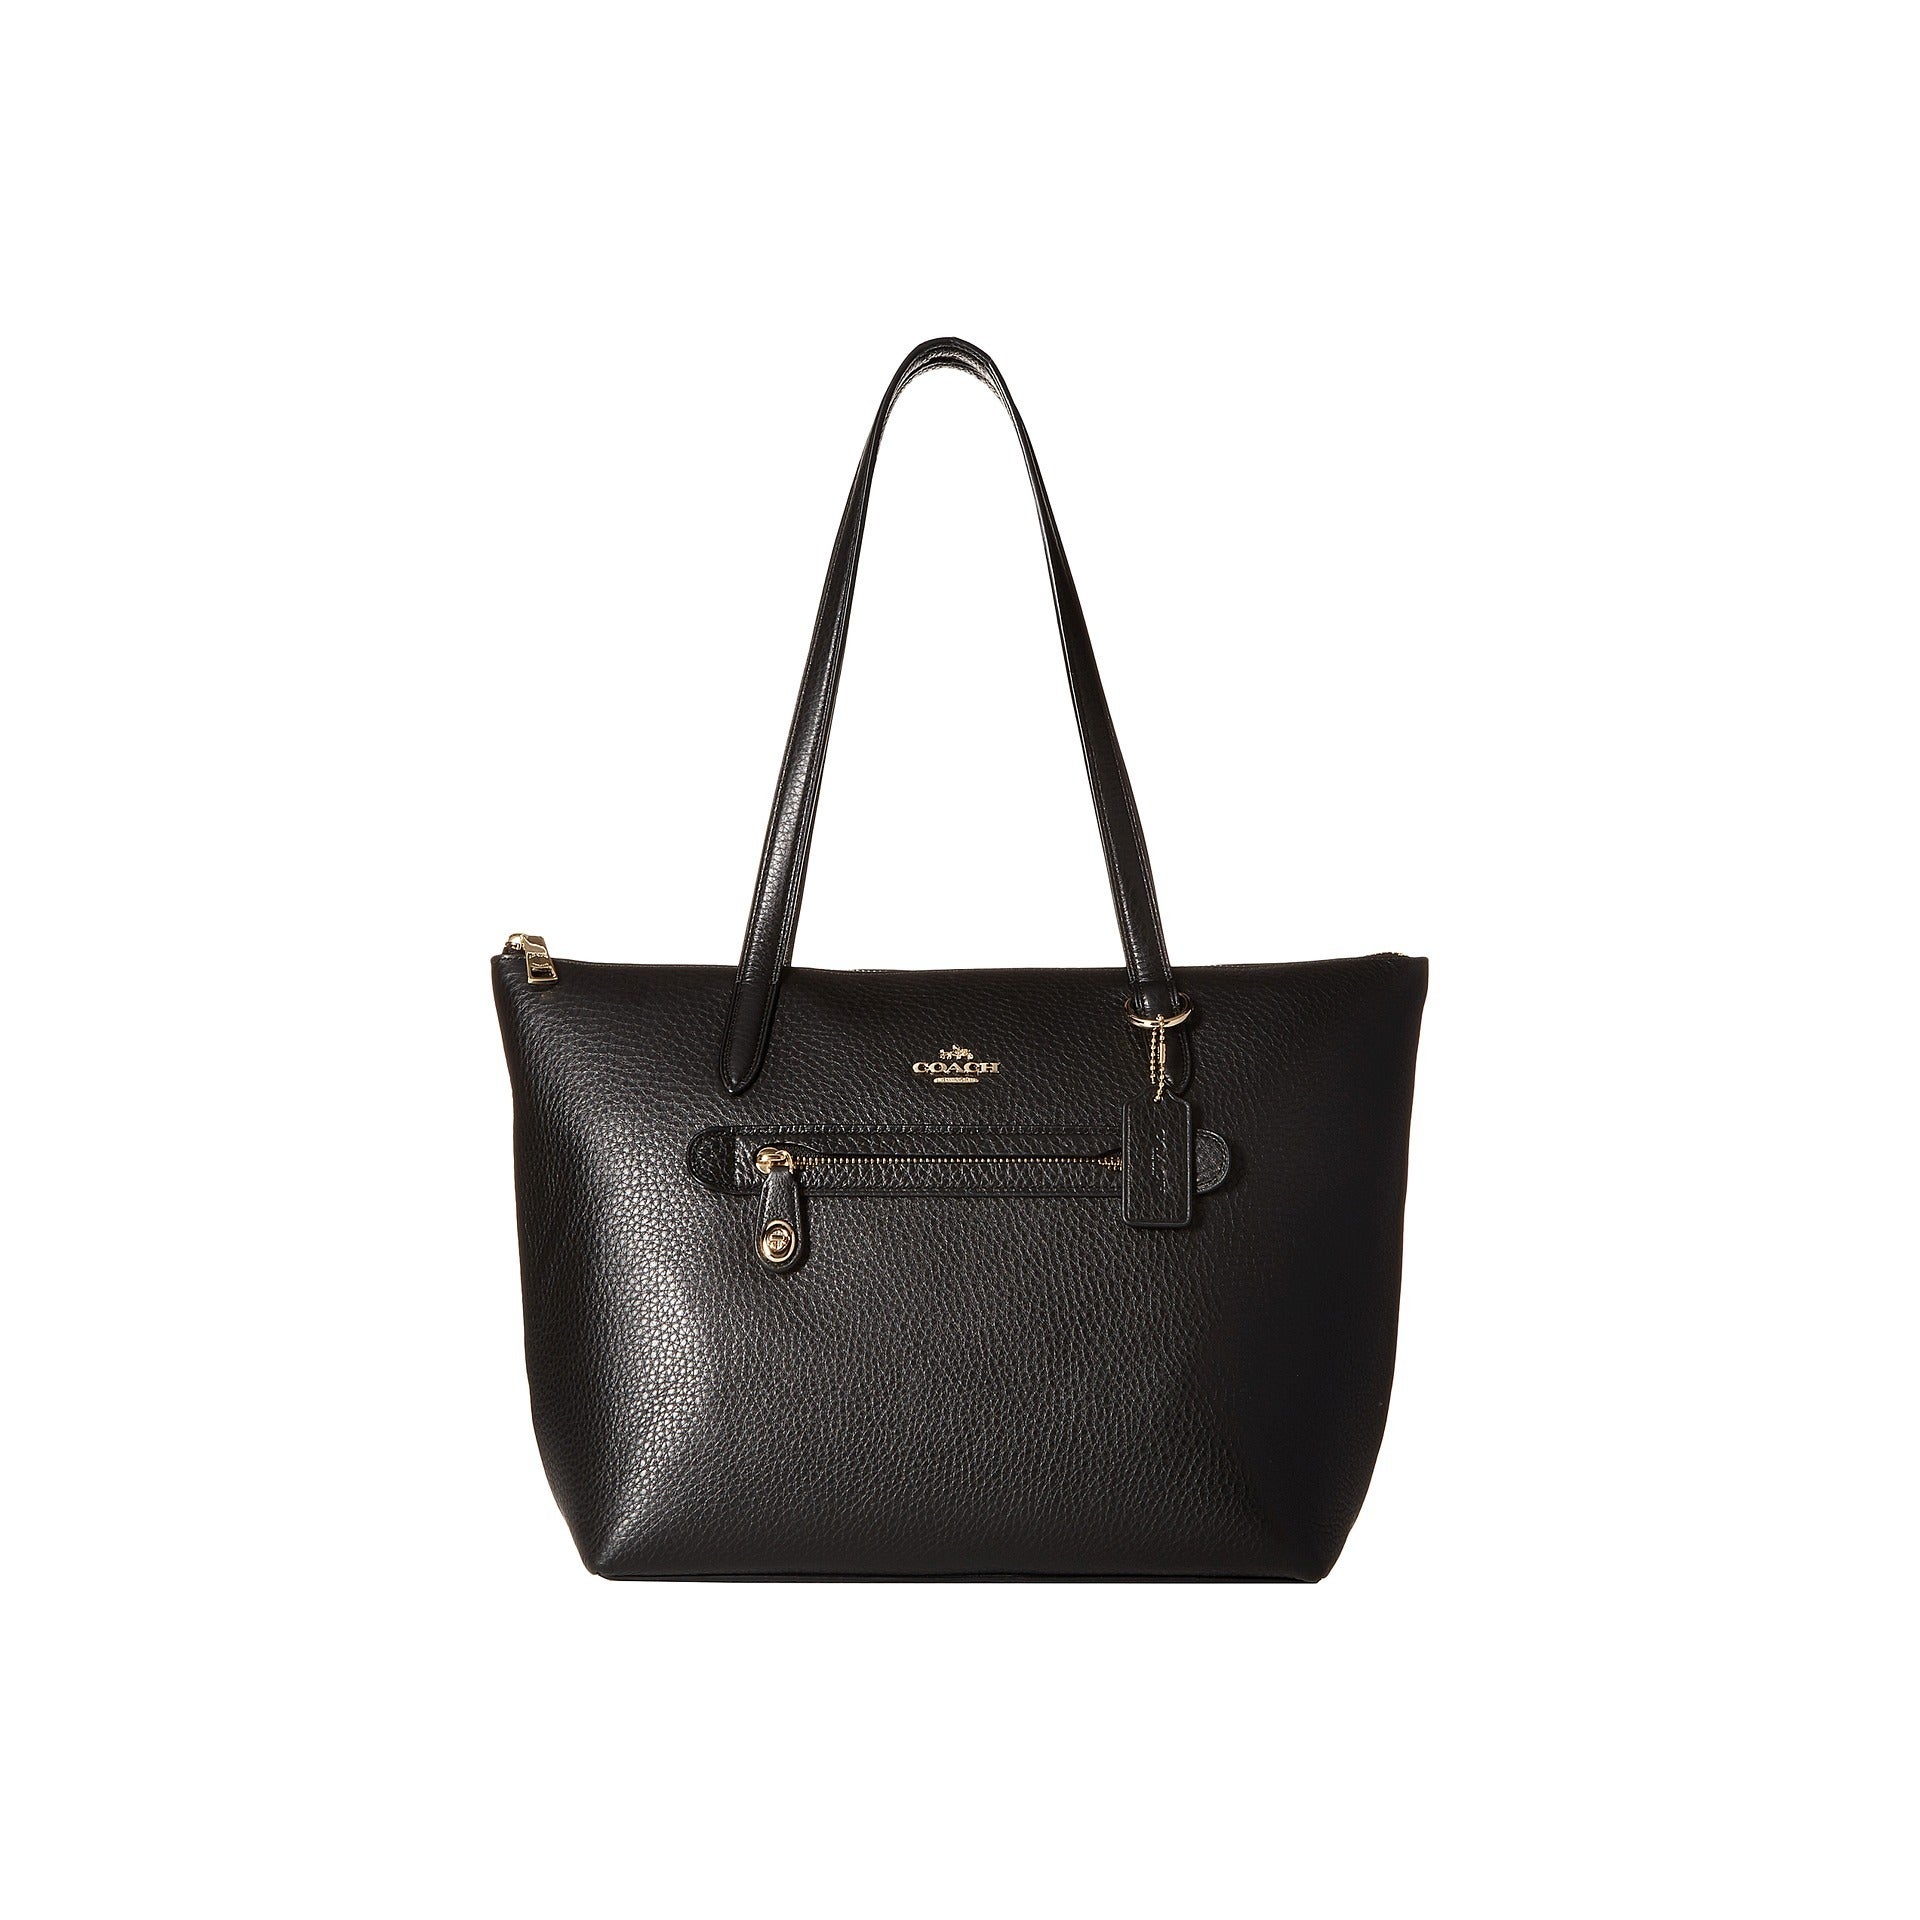 3a2601be9f Shop Coach Taylor Pebbled Black Leather Tote Bag - Free Shipping Today -  Overstock - 13477133